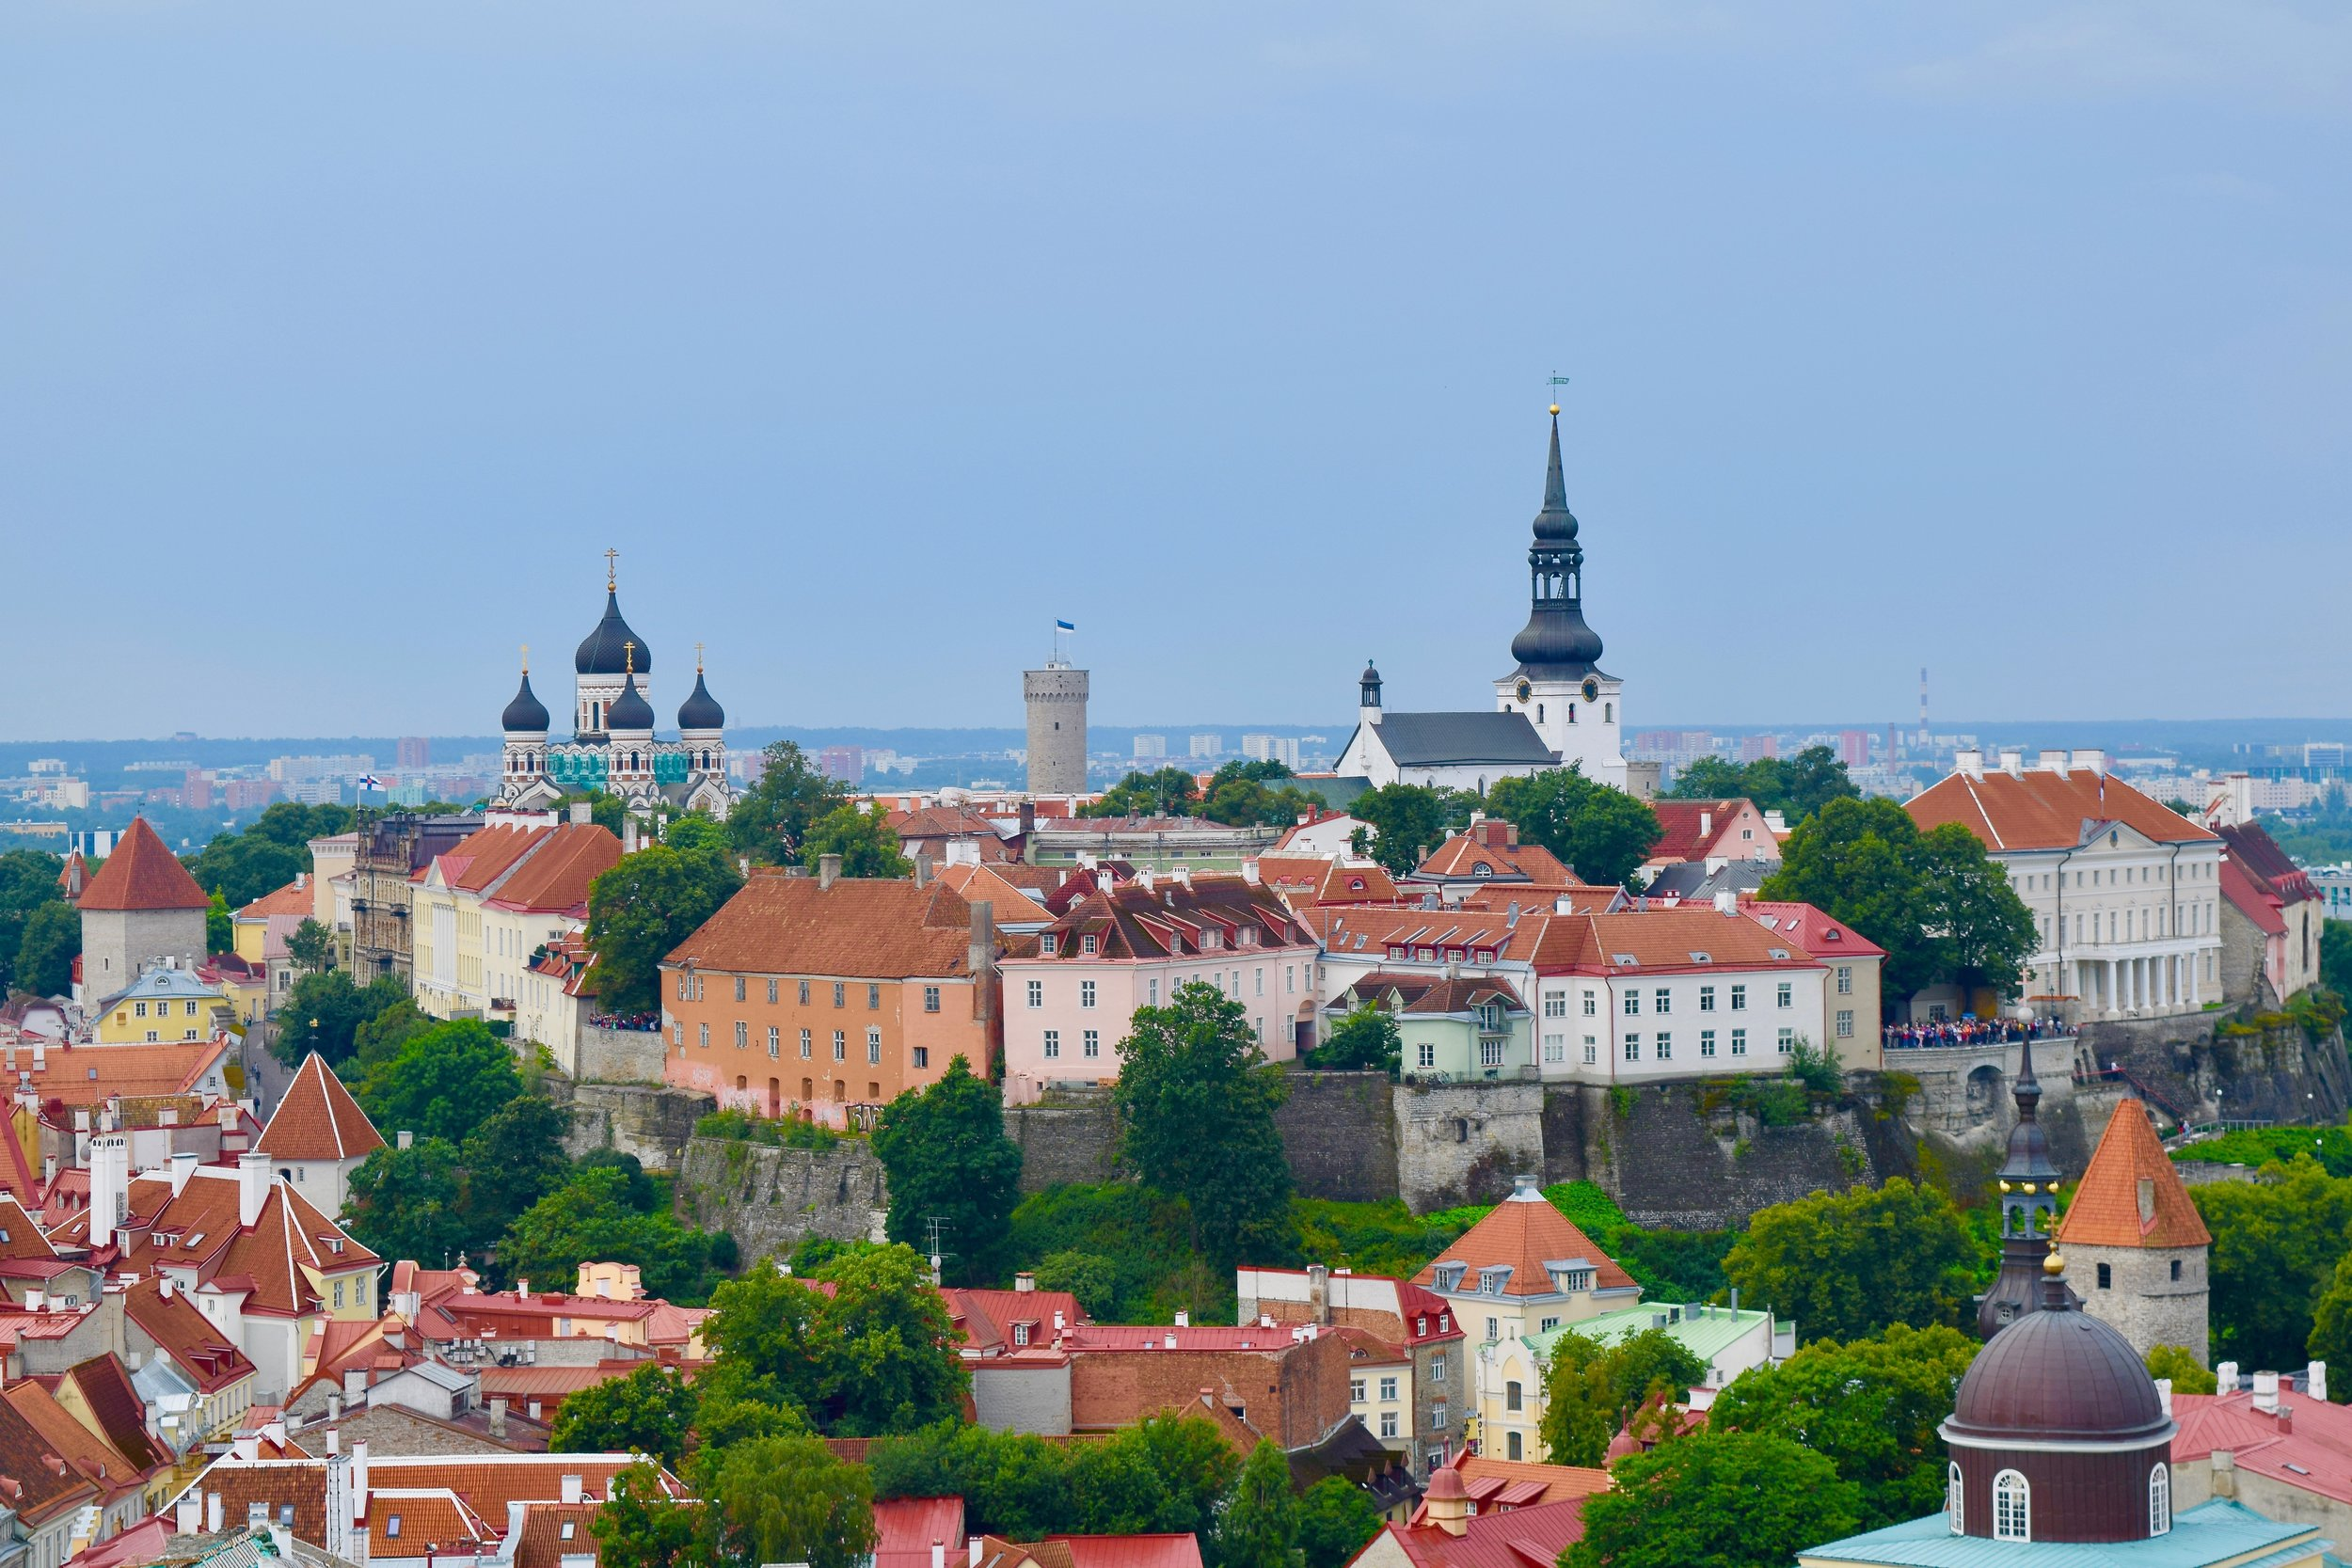 View of Tallinn from St. Olaf's Church